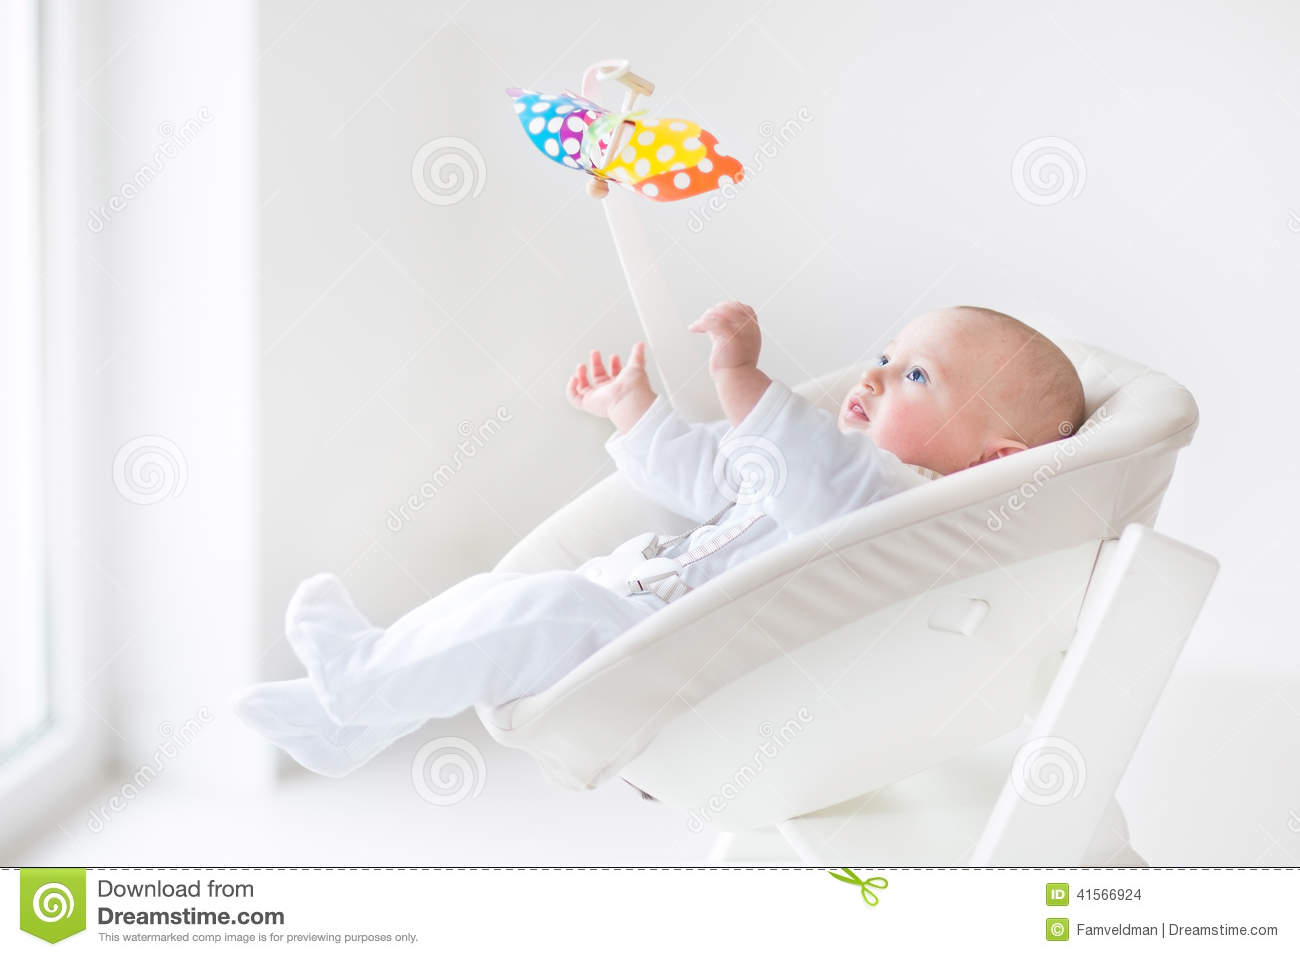 infant feeding chair cheap rental covers cute newborn baby boy watching colorful mobile toy stock photo - image: 41566924